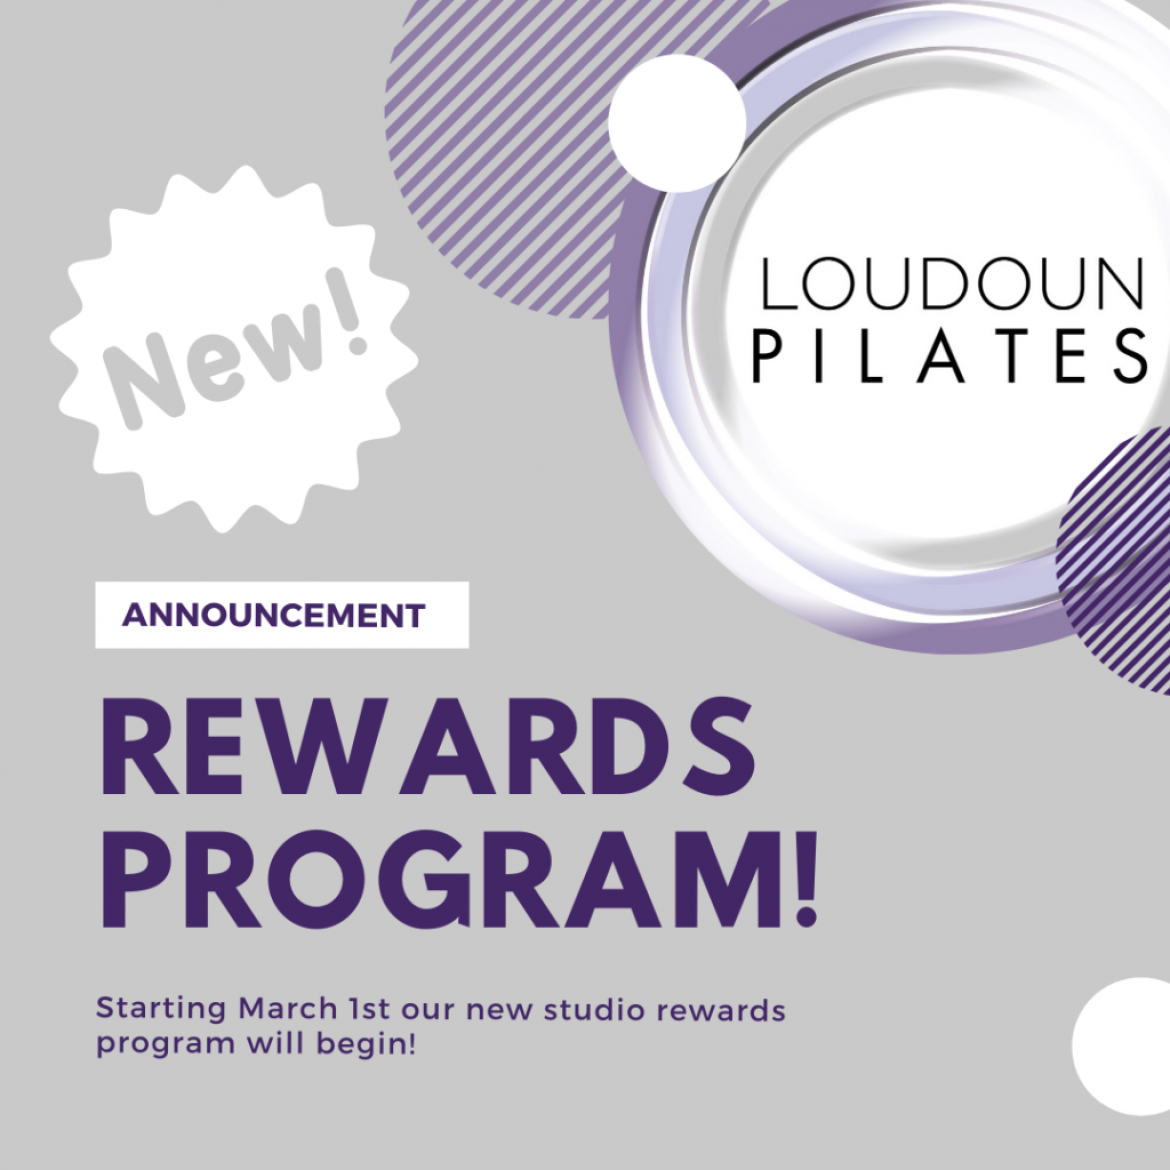 Studio Rewards Program